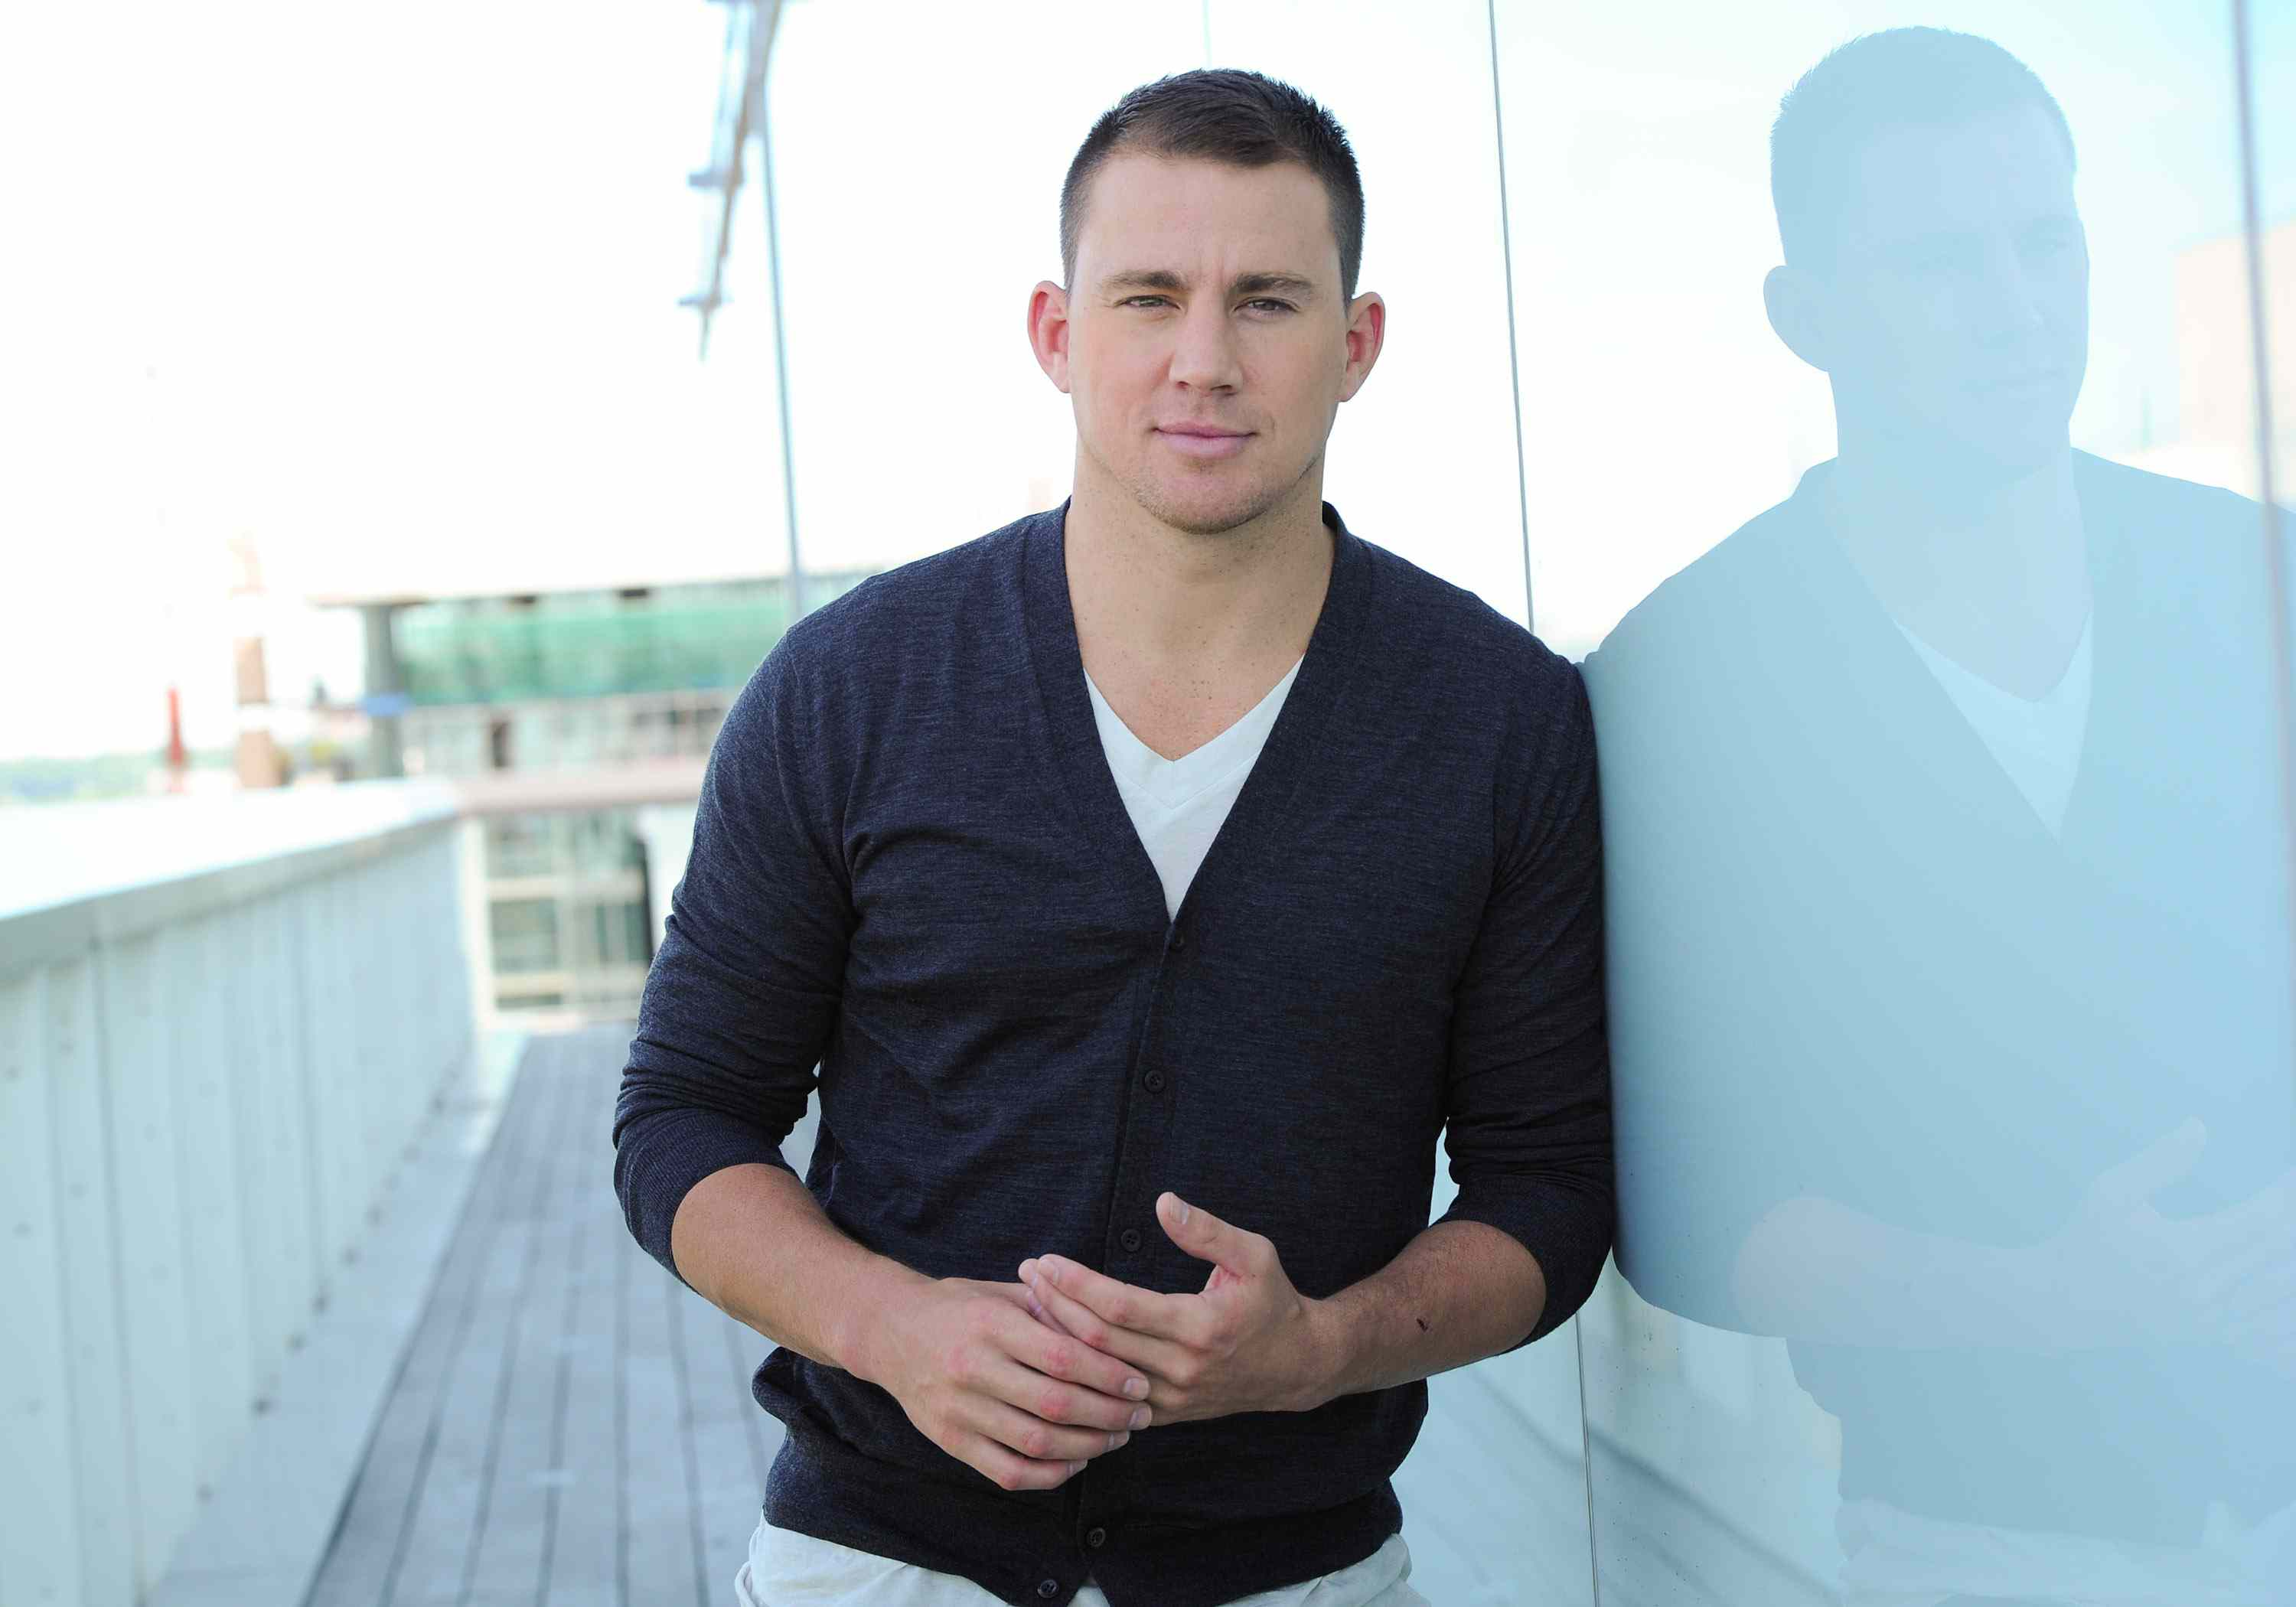 Channing Tatum leaning against a white wall outside